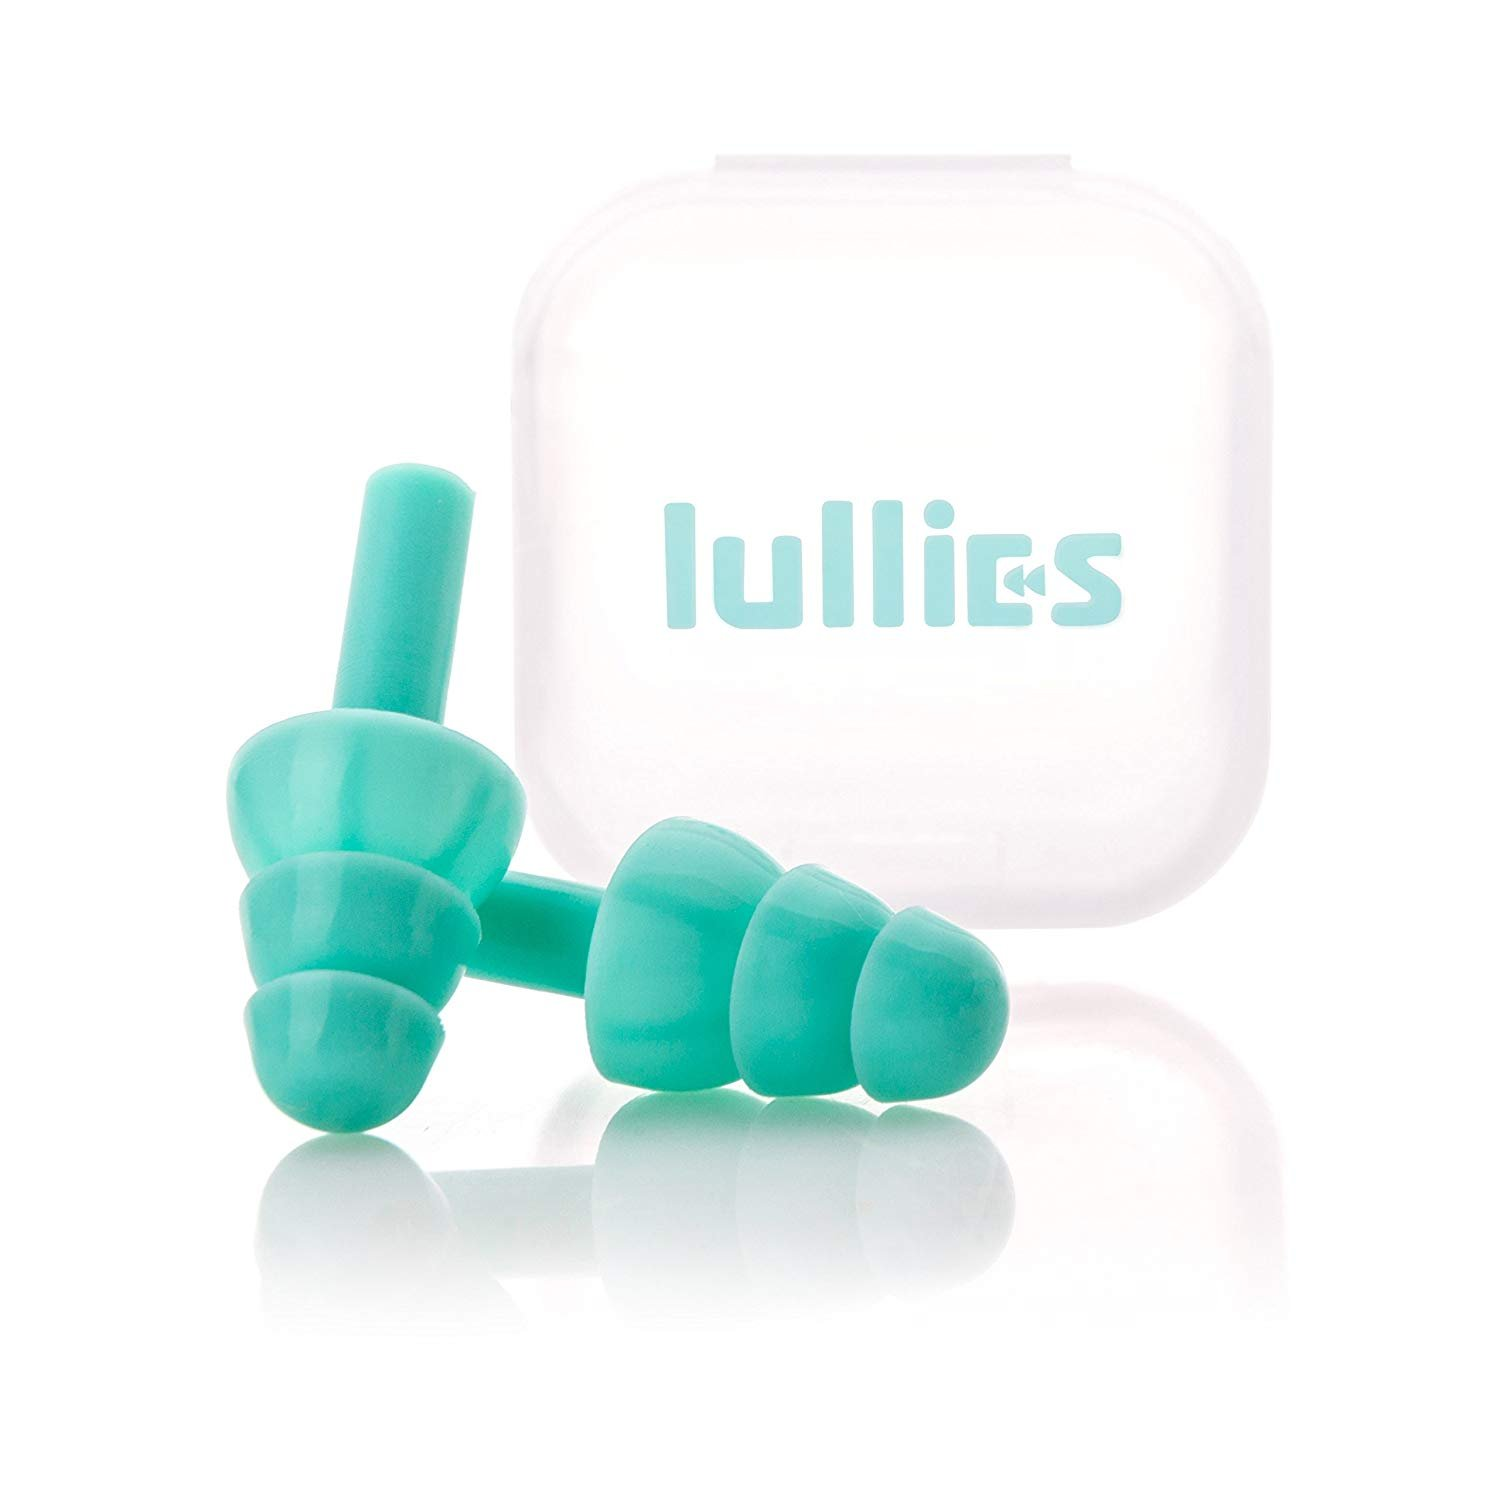 Lullies Ear Plugs (Turquoise) Noise Cancelling Reusable Earplugs for Sleeping by lullies (Image #1)